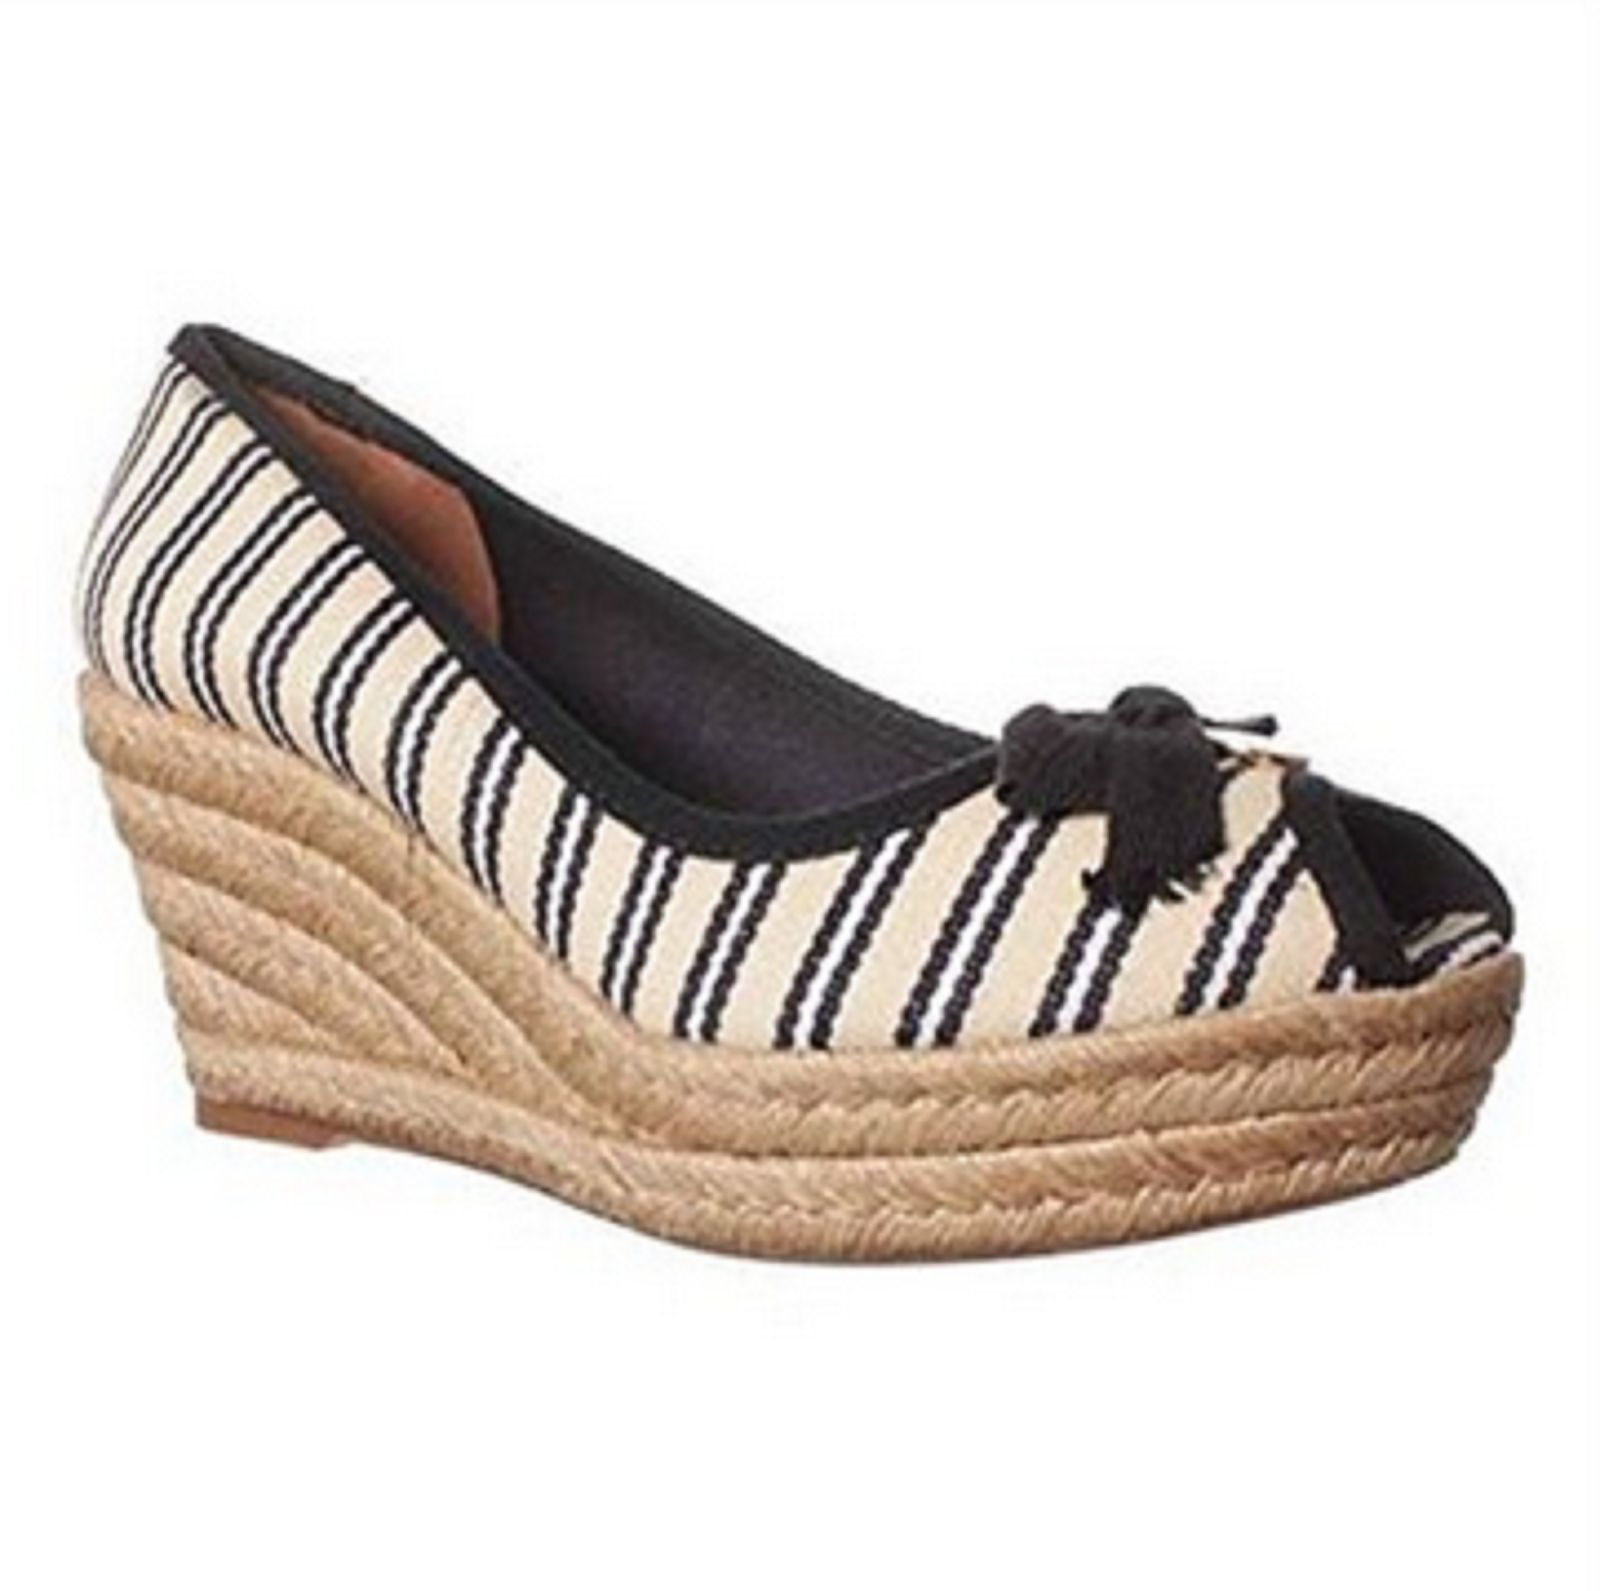 e5c7ab54fd3 Tory Burch Jackie Wedge Sandal - Ivory/navy and 50 similar items